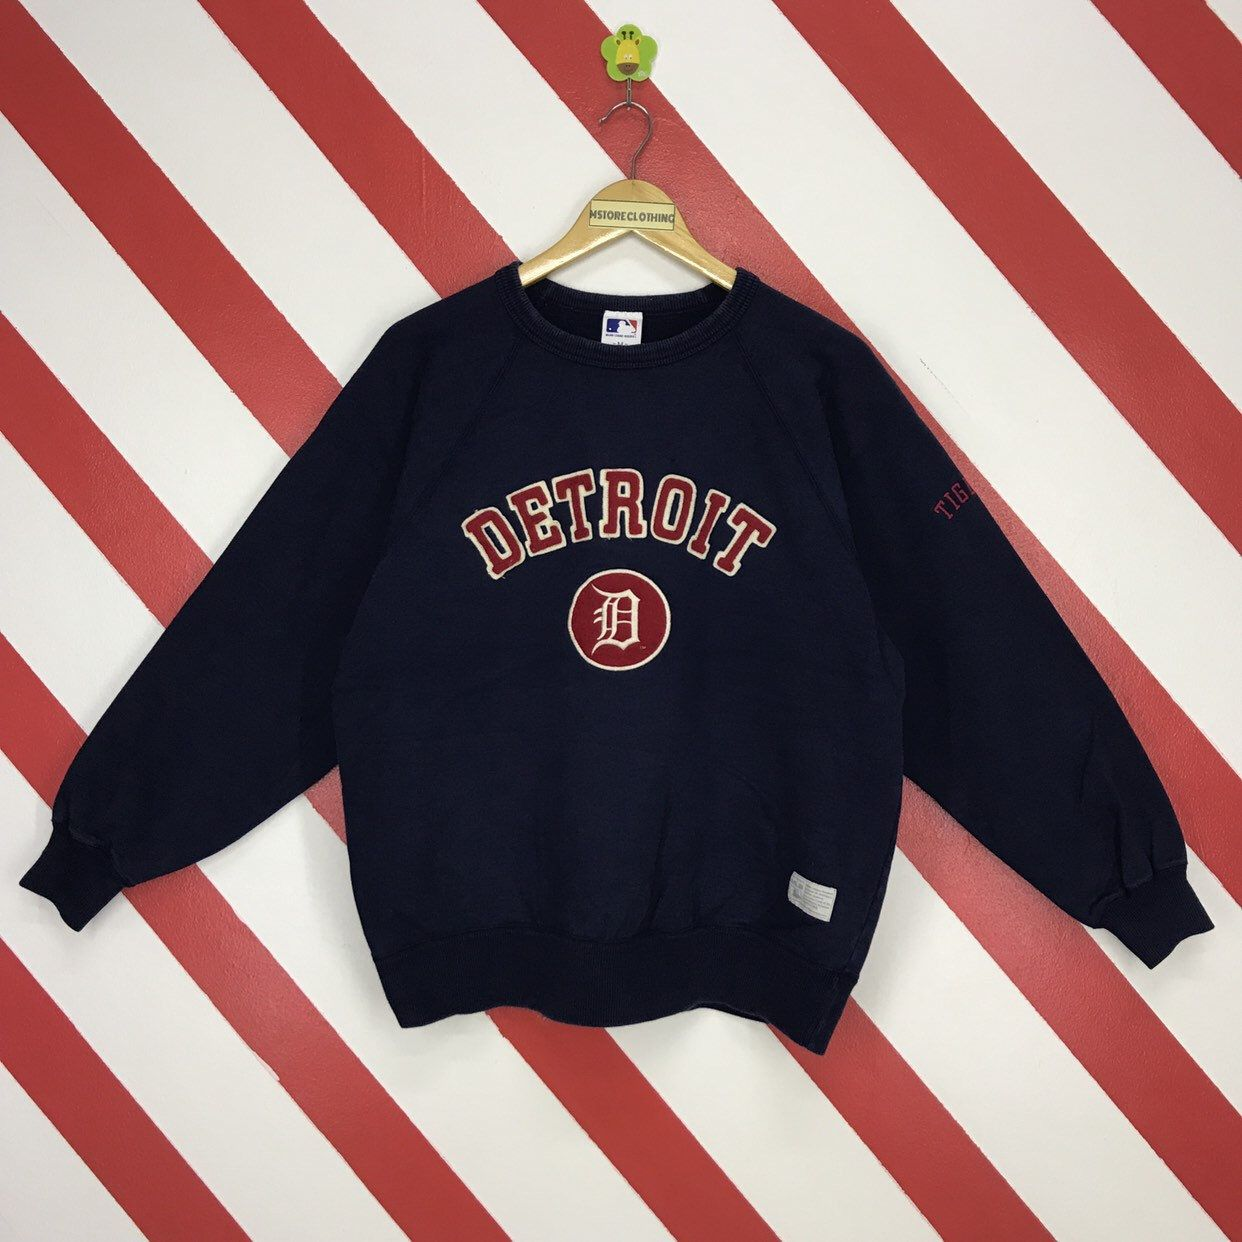 065cfb51 Excited to share the latest addition to my #etsy shop: Vintage 90s Detroit  Tigers